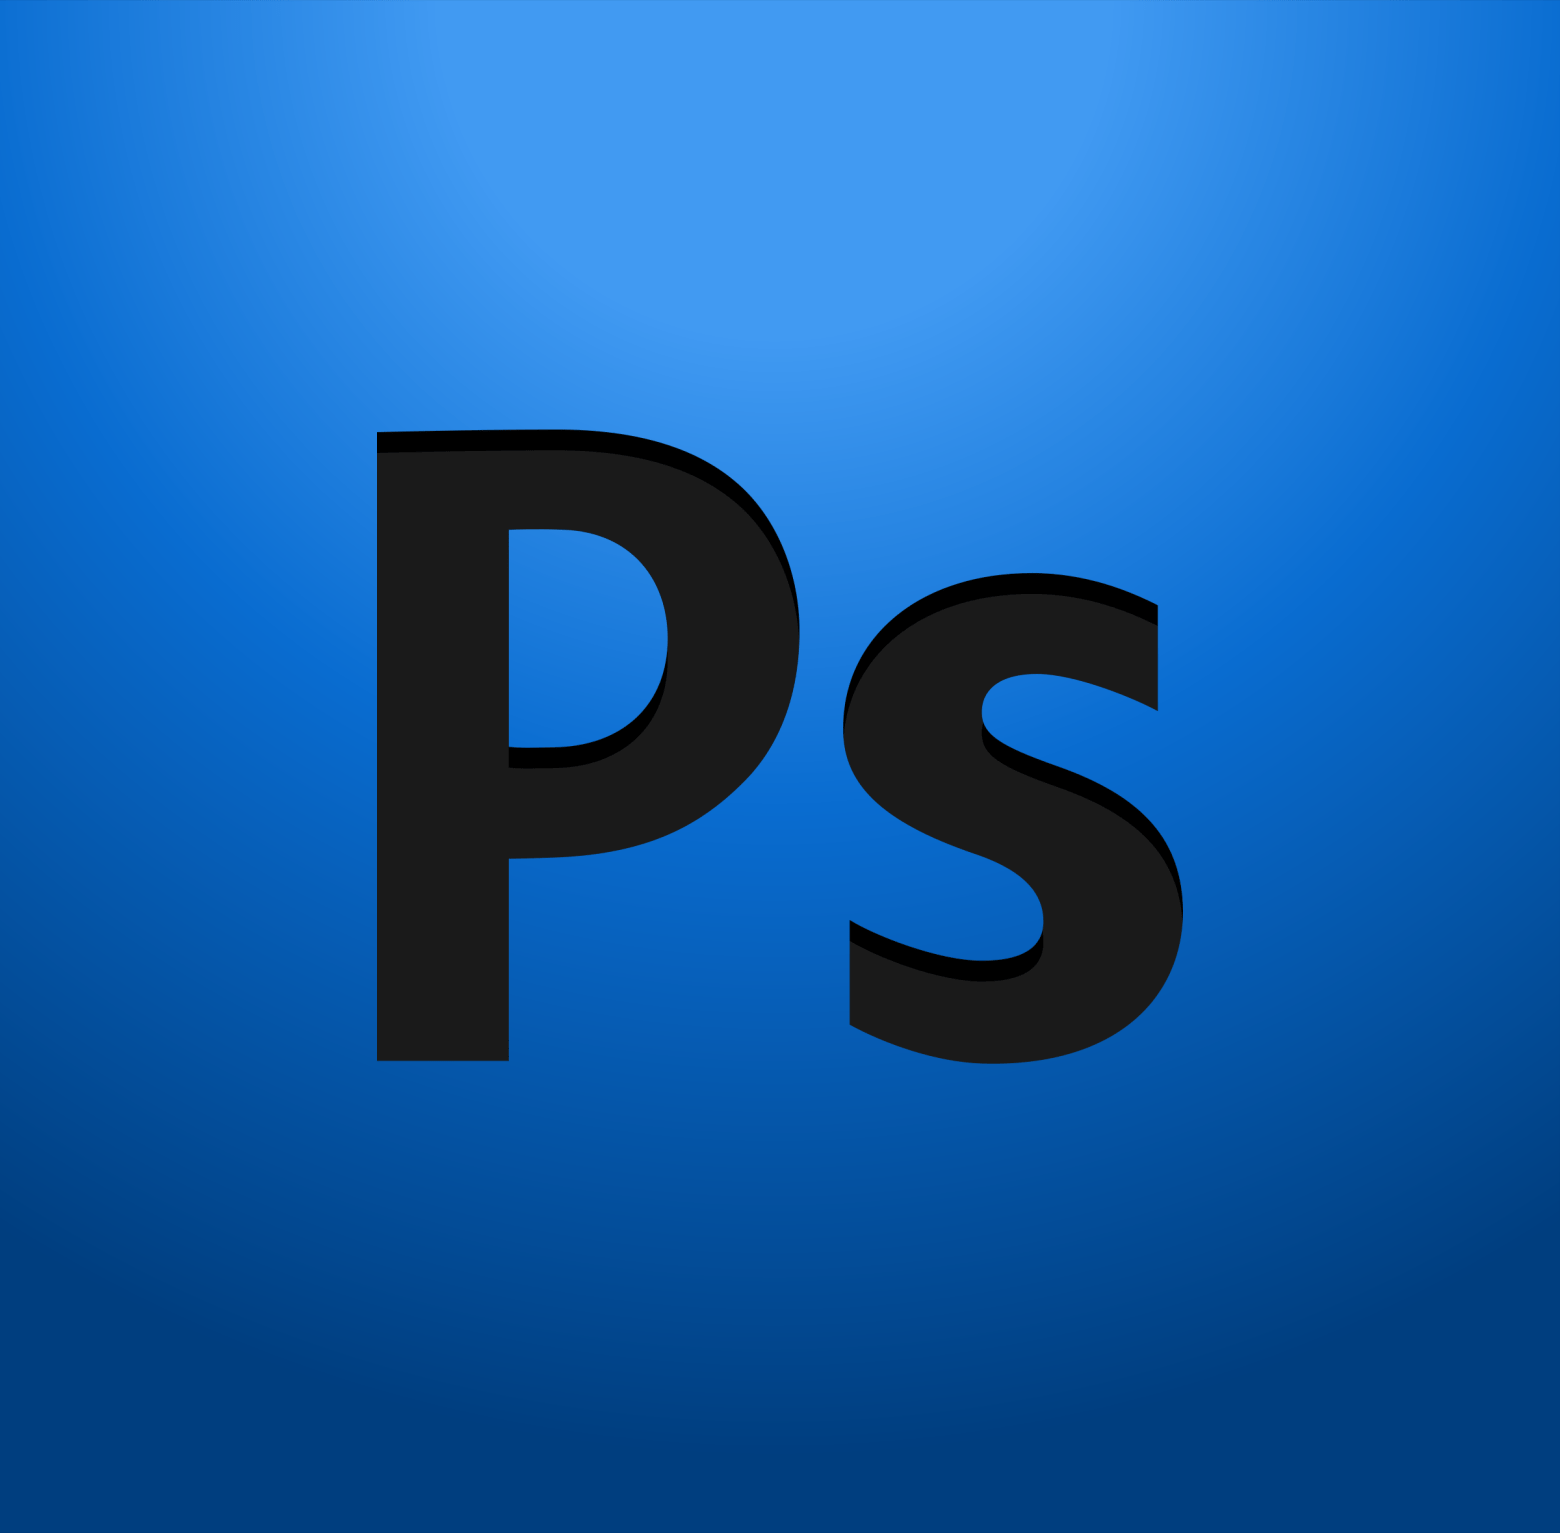 Adobe Photoshop Crack + Torrent Free Download Latest [2019]